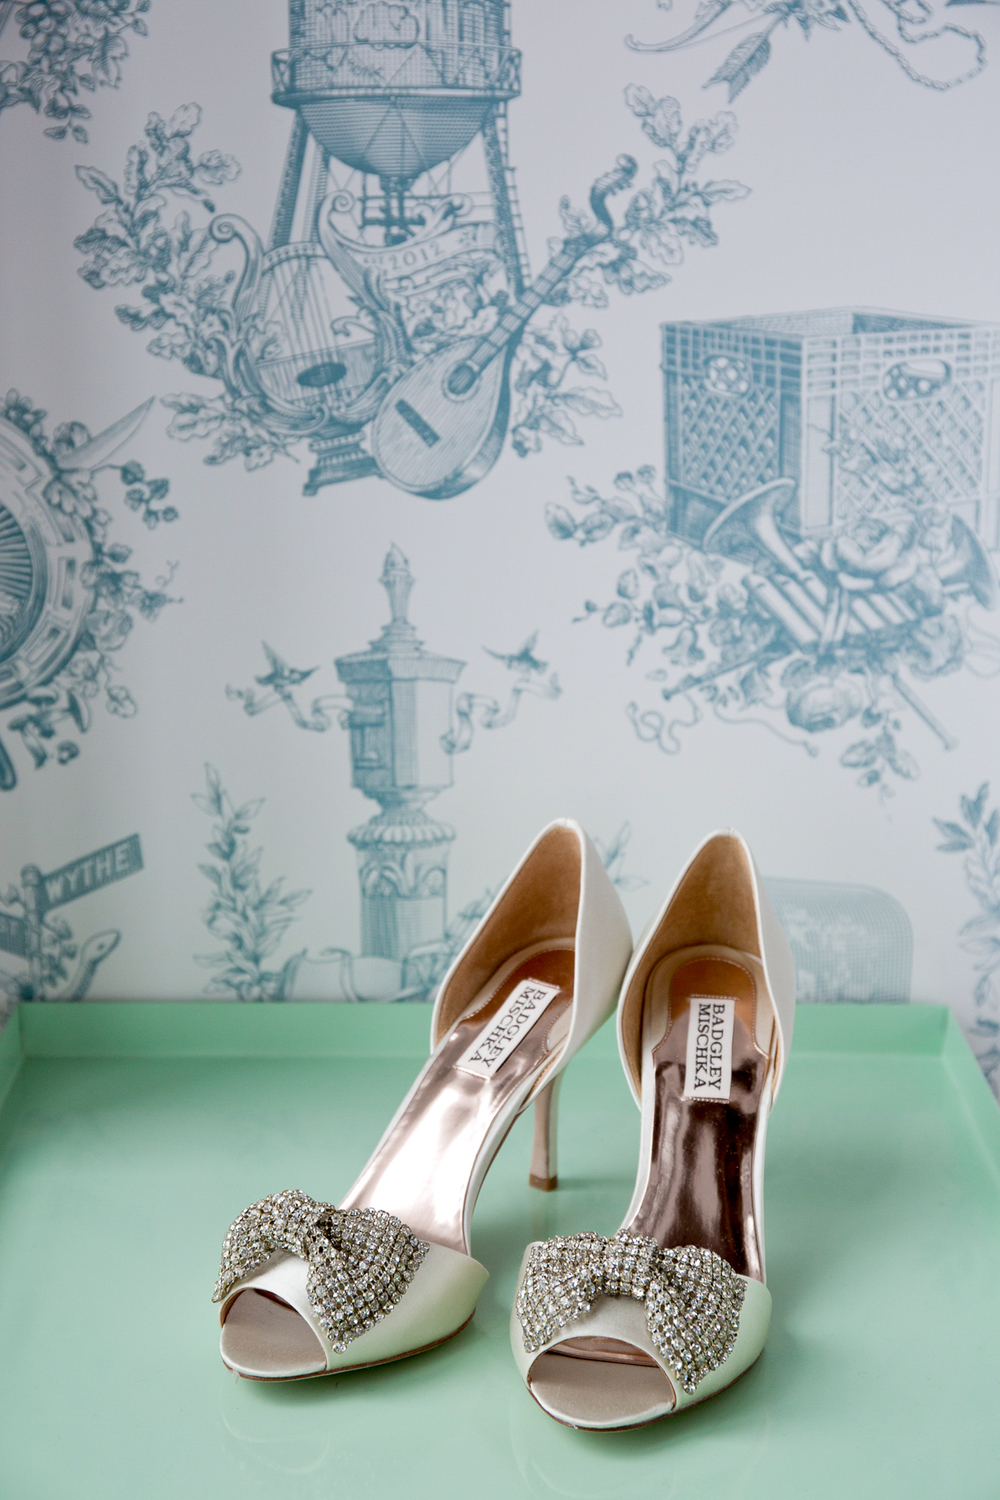 006_CarlyGaebe_SteadfastStudio_WeddingPhotography_NewYorkCity_Brooklyn_WytheHotel_Retro_HighHeels_BadgleyMischka_SequinBow_Bride.jpg